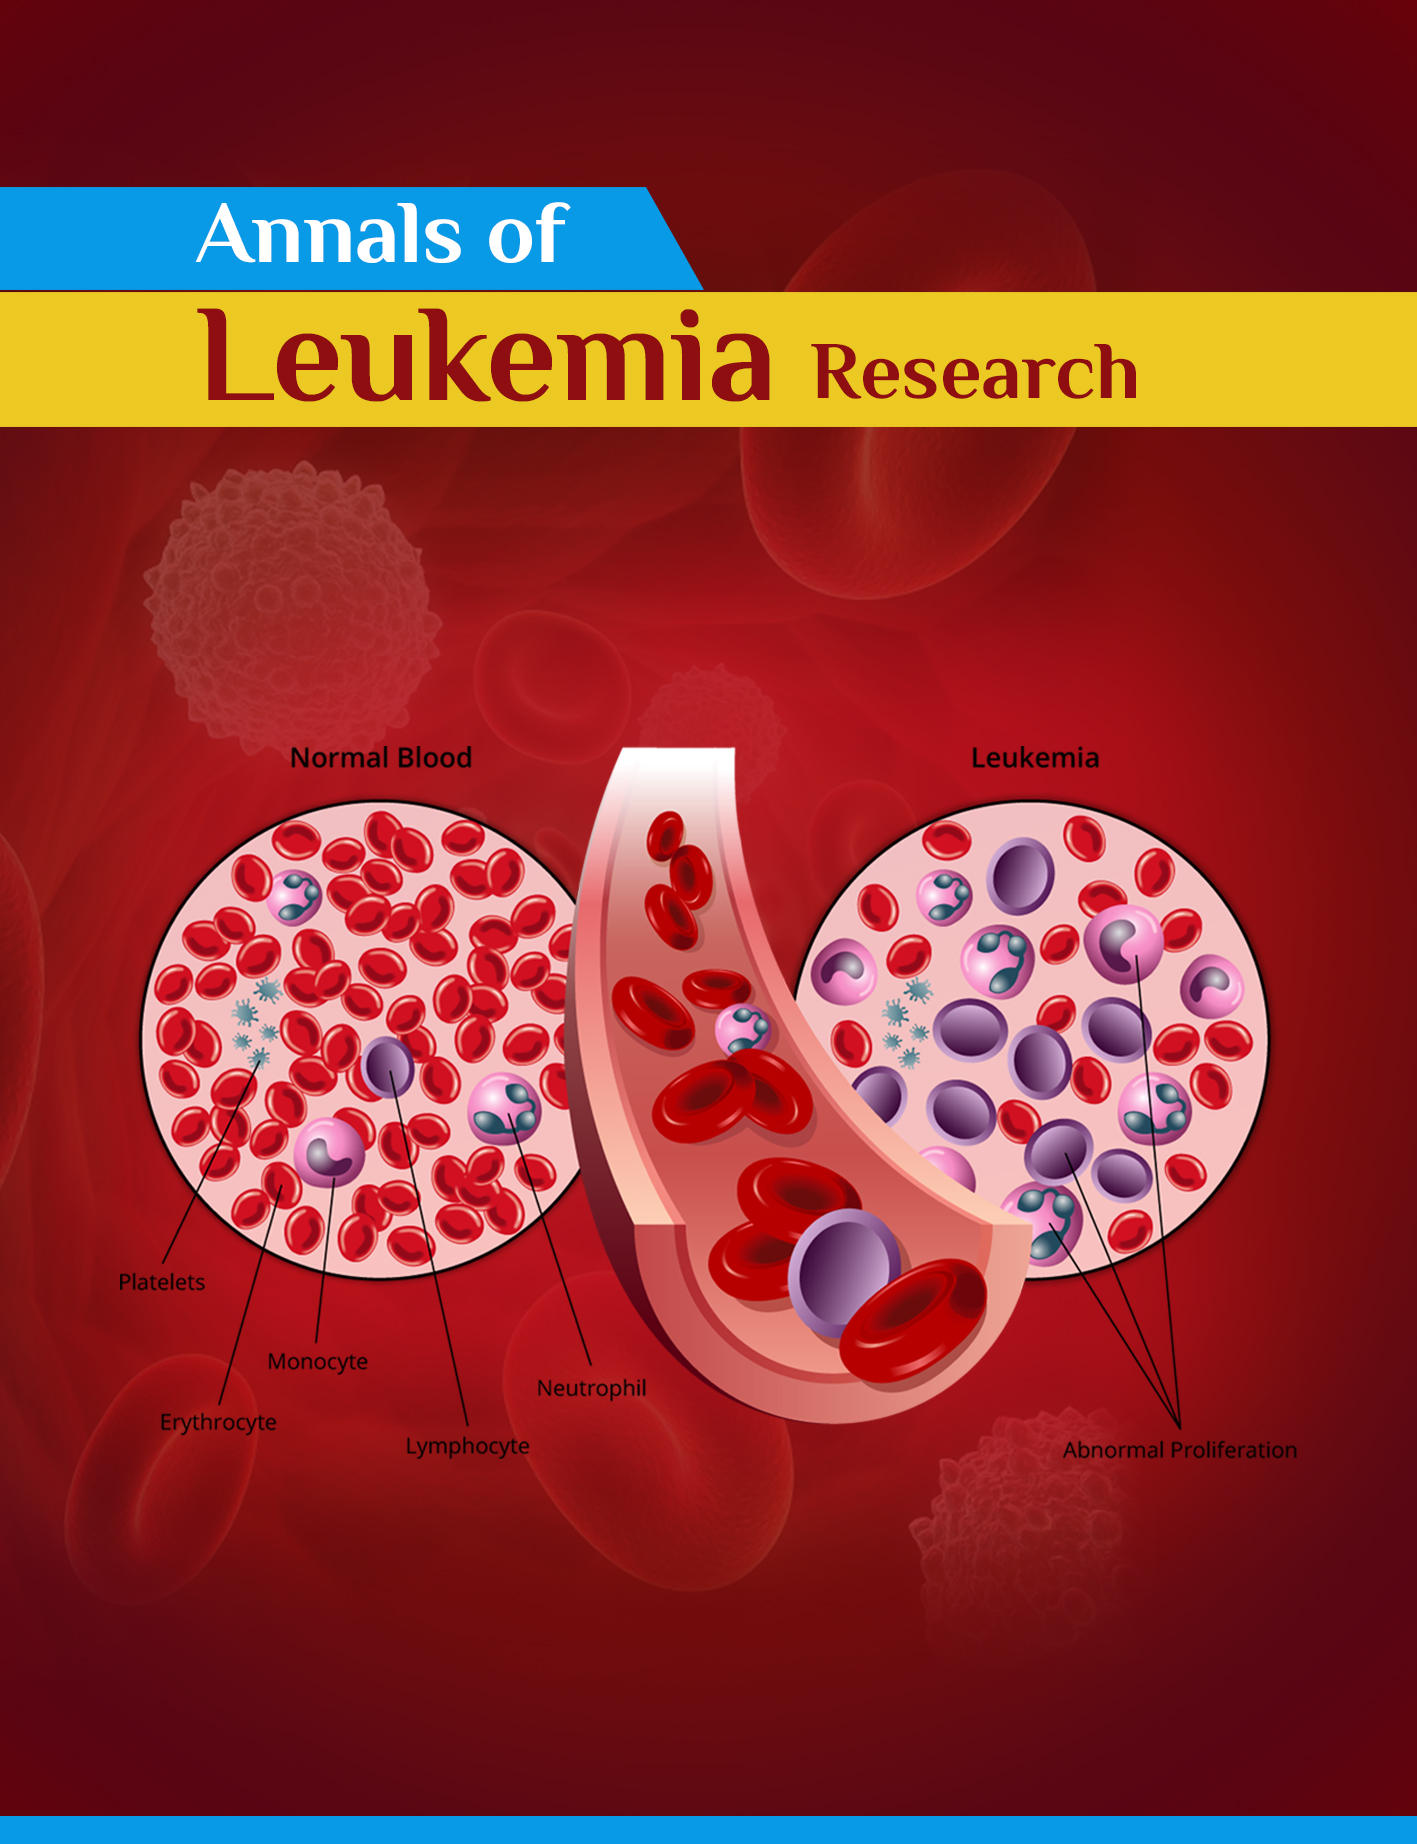 Annals of Leukemia Research | Somato Publications